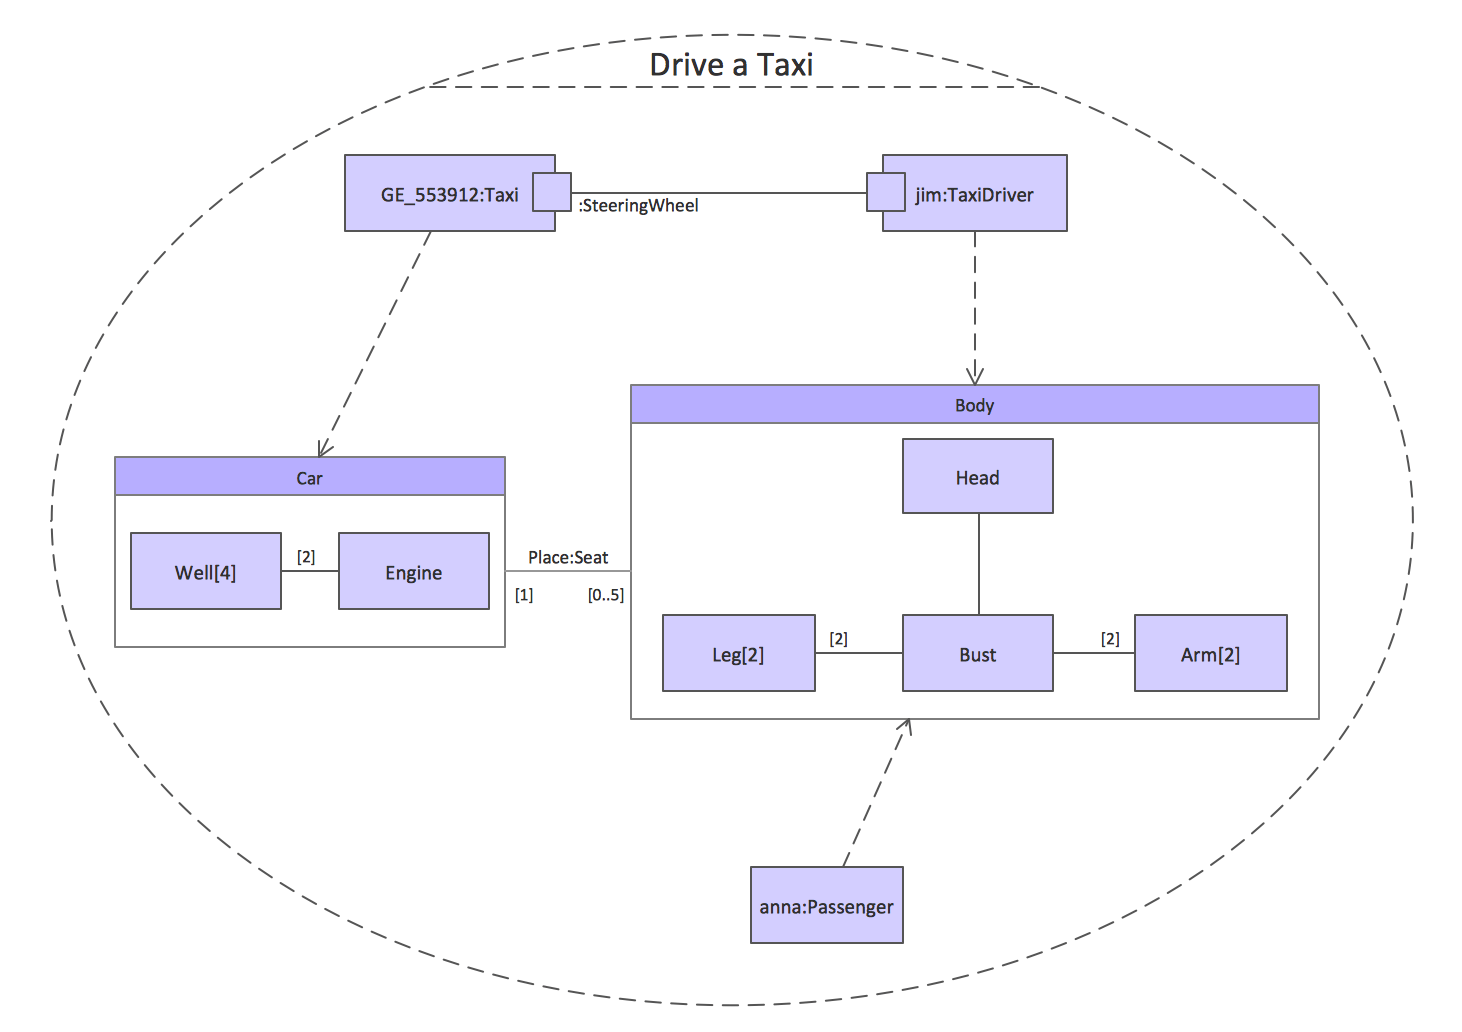 hight resolution of uml composite structure diagrams drive a taxi drive a taxi